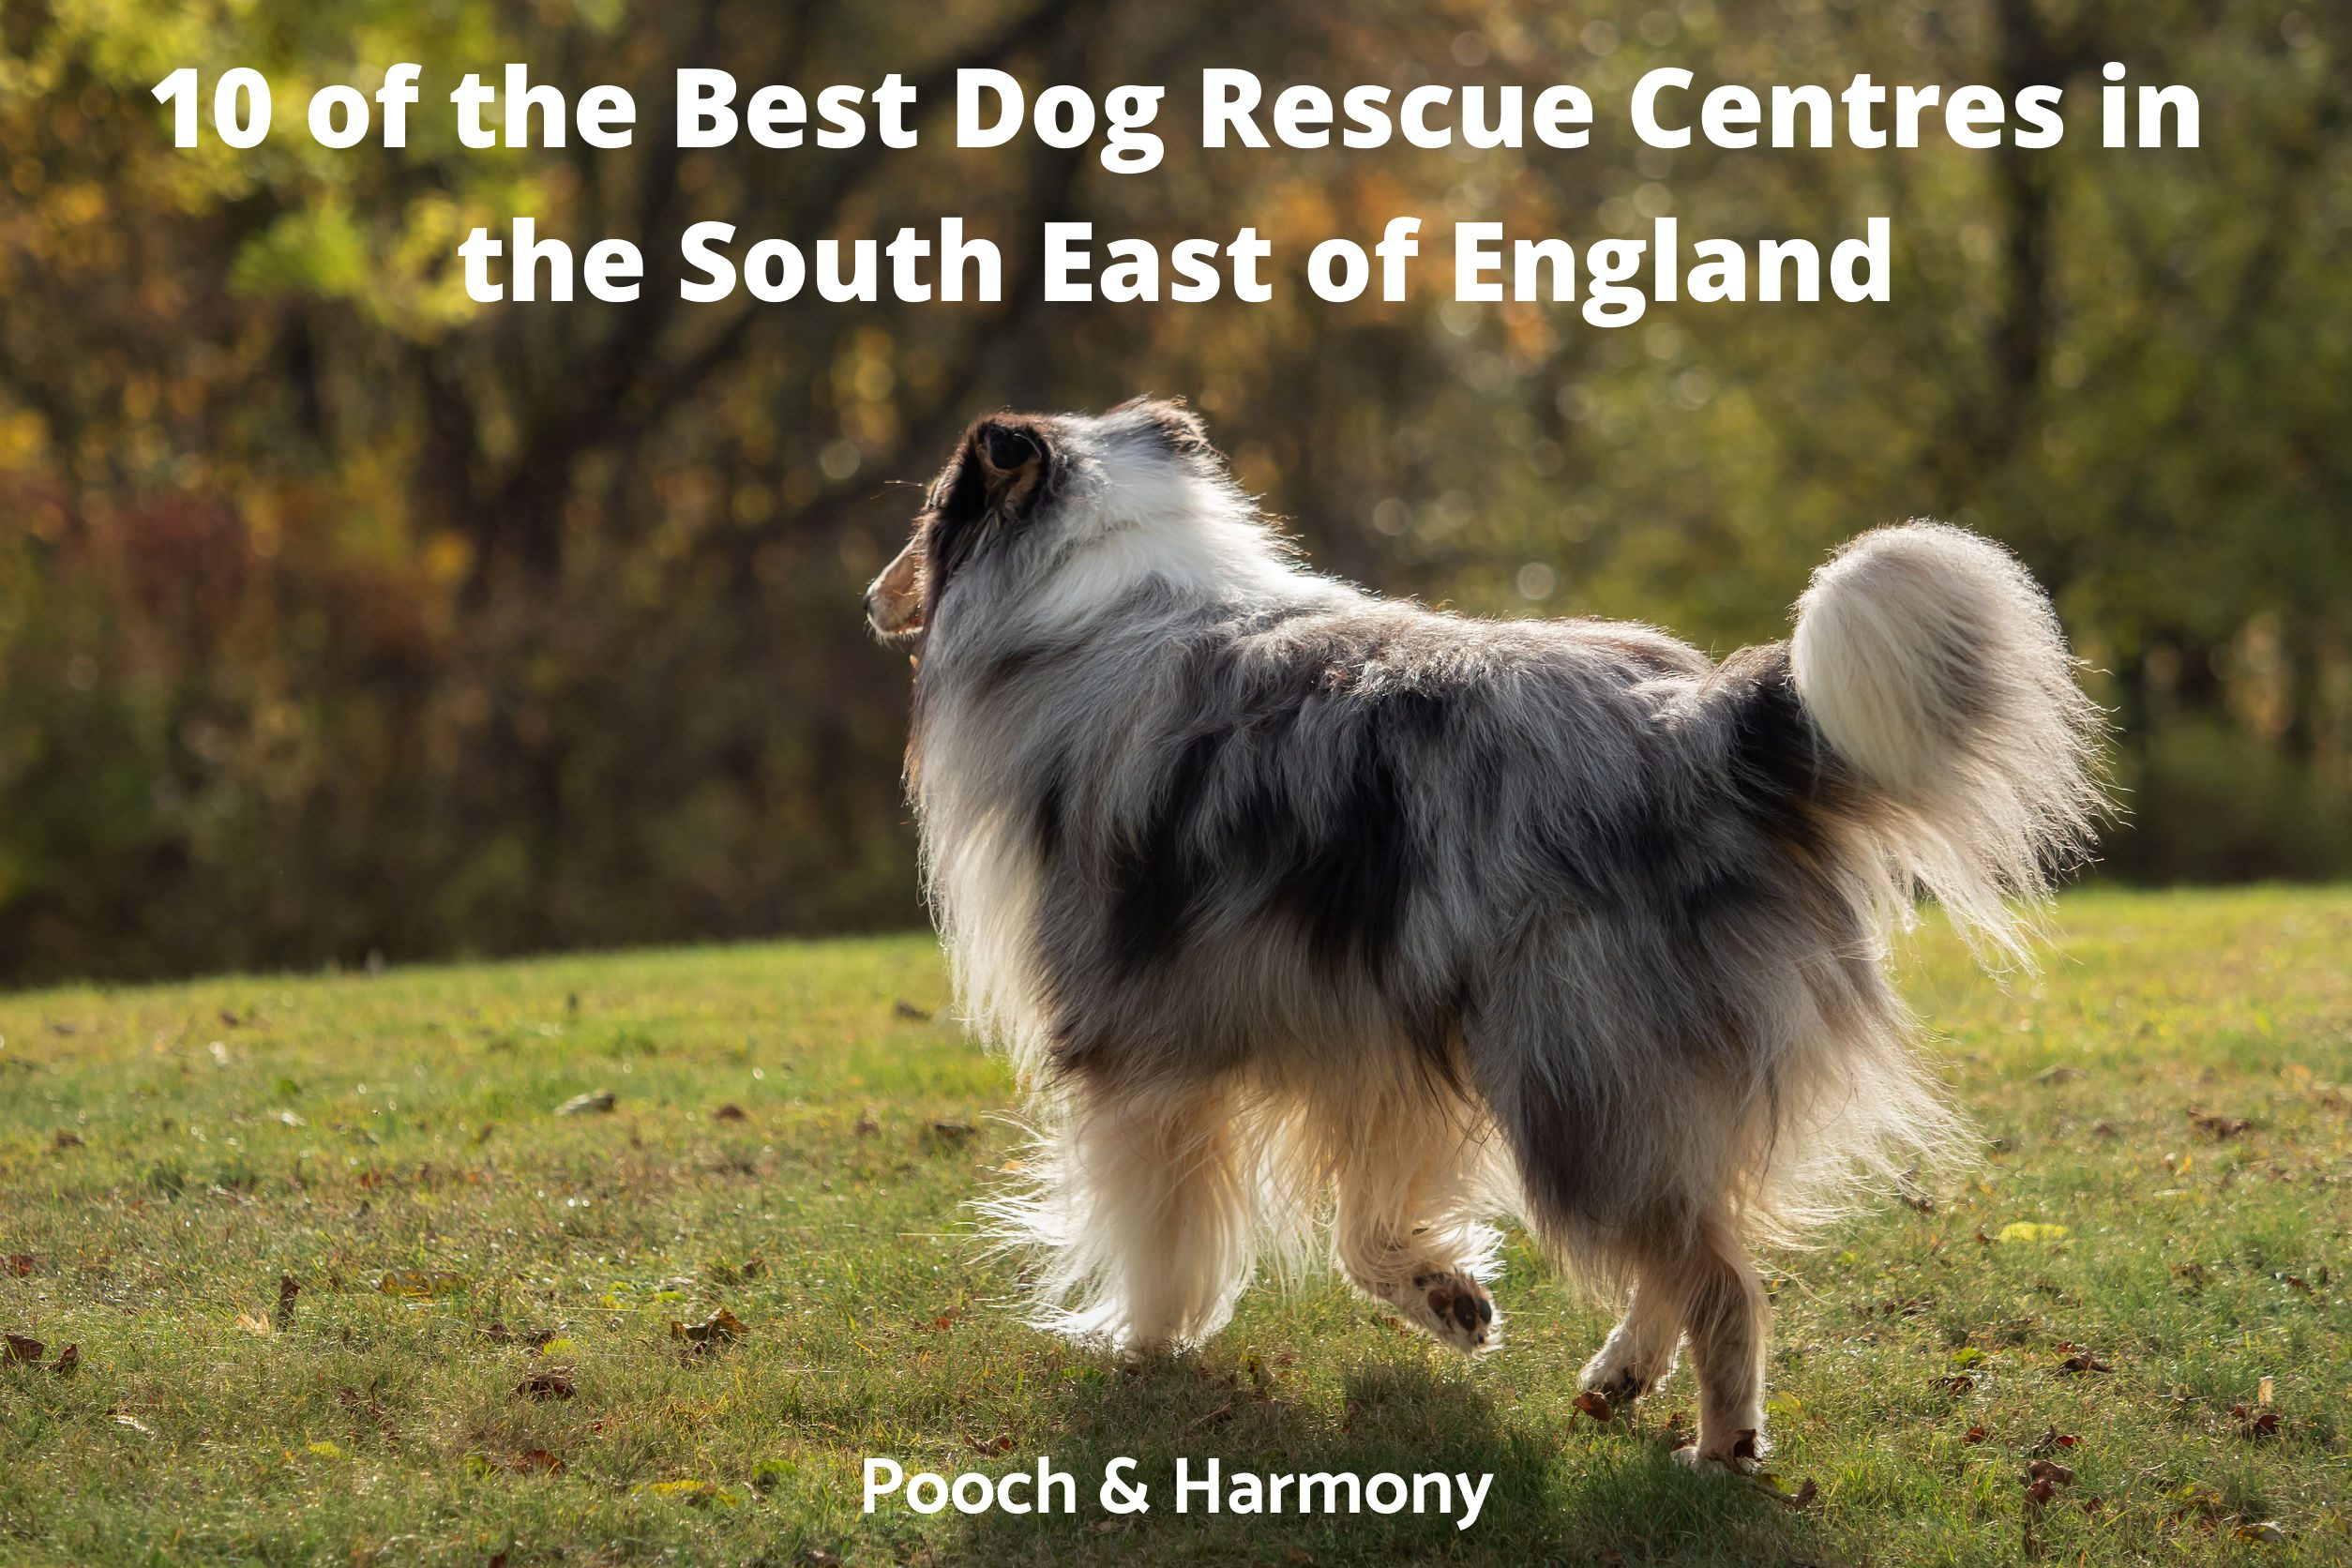 Dog Rescue Centres in the South East of England